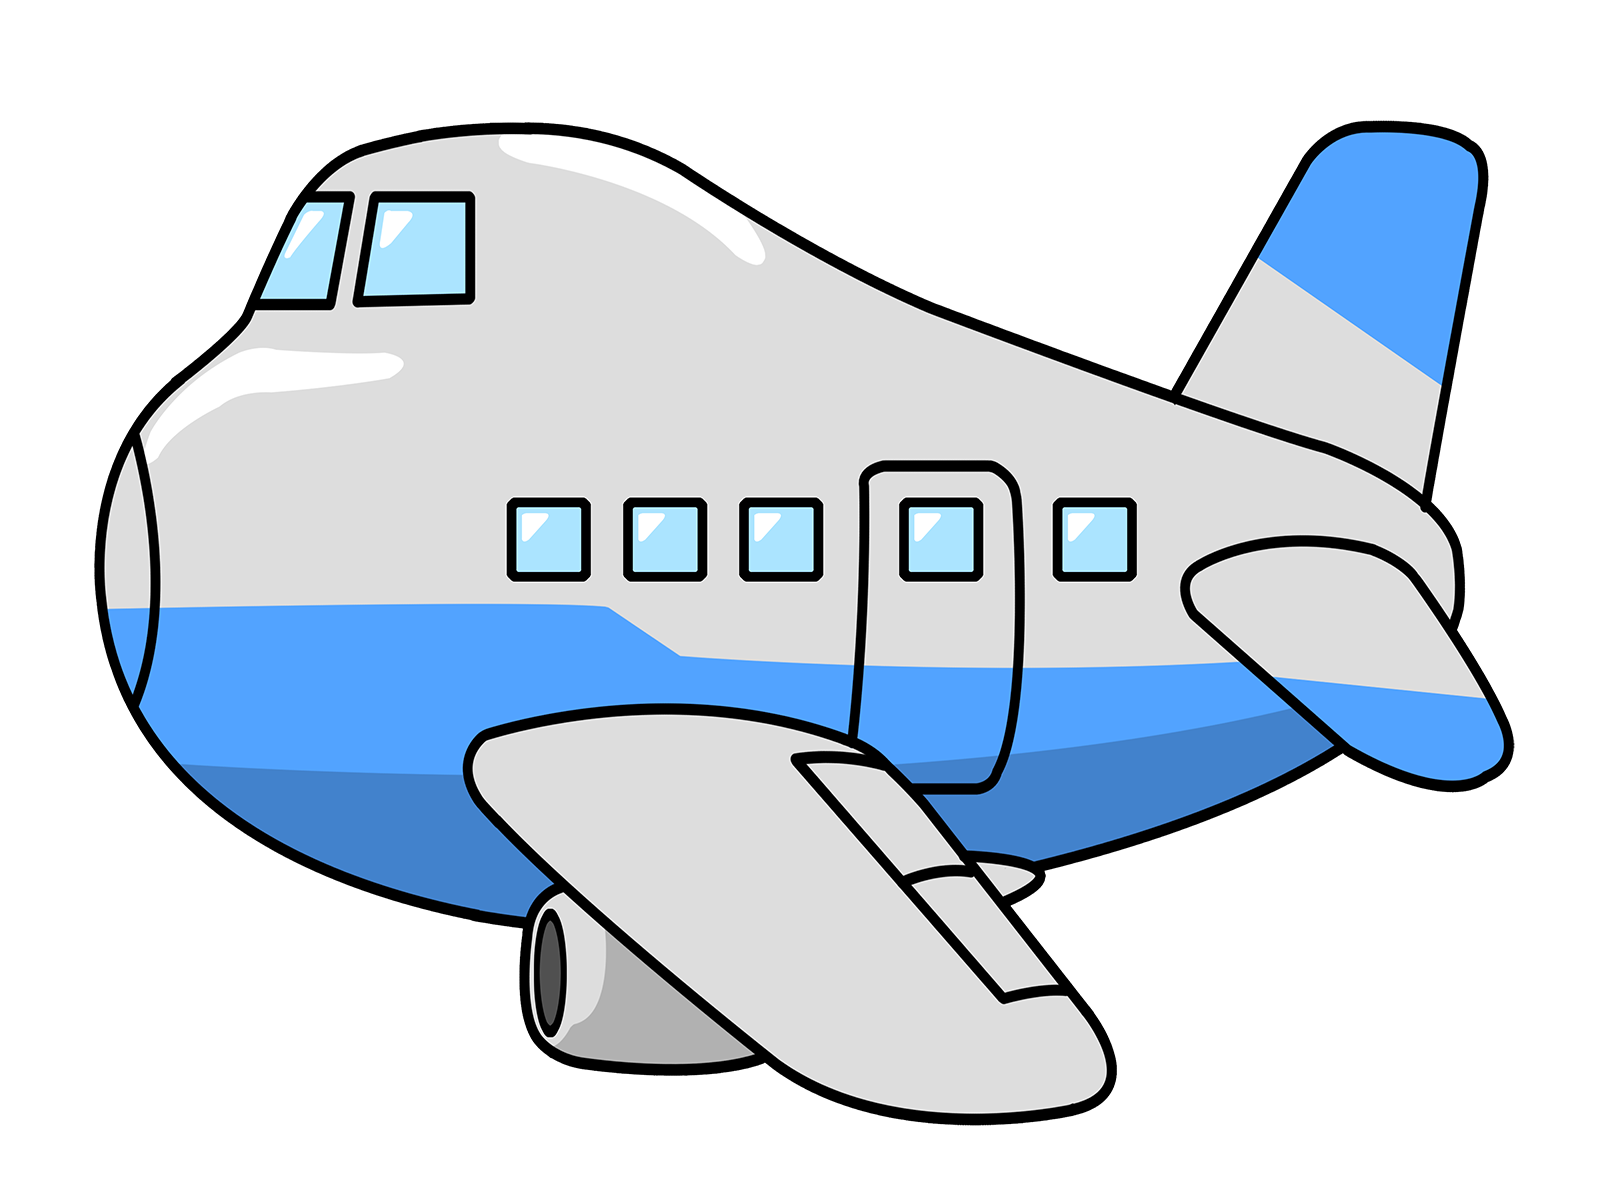 Airplane clipart #2, Download drawings